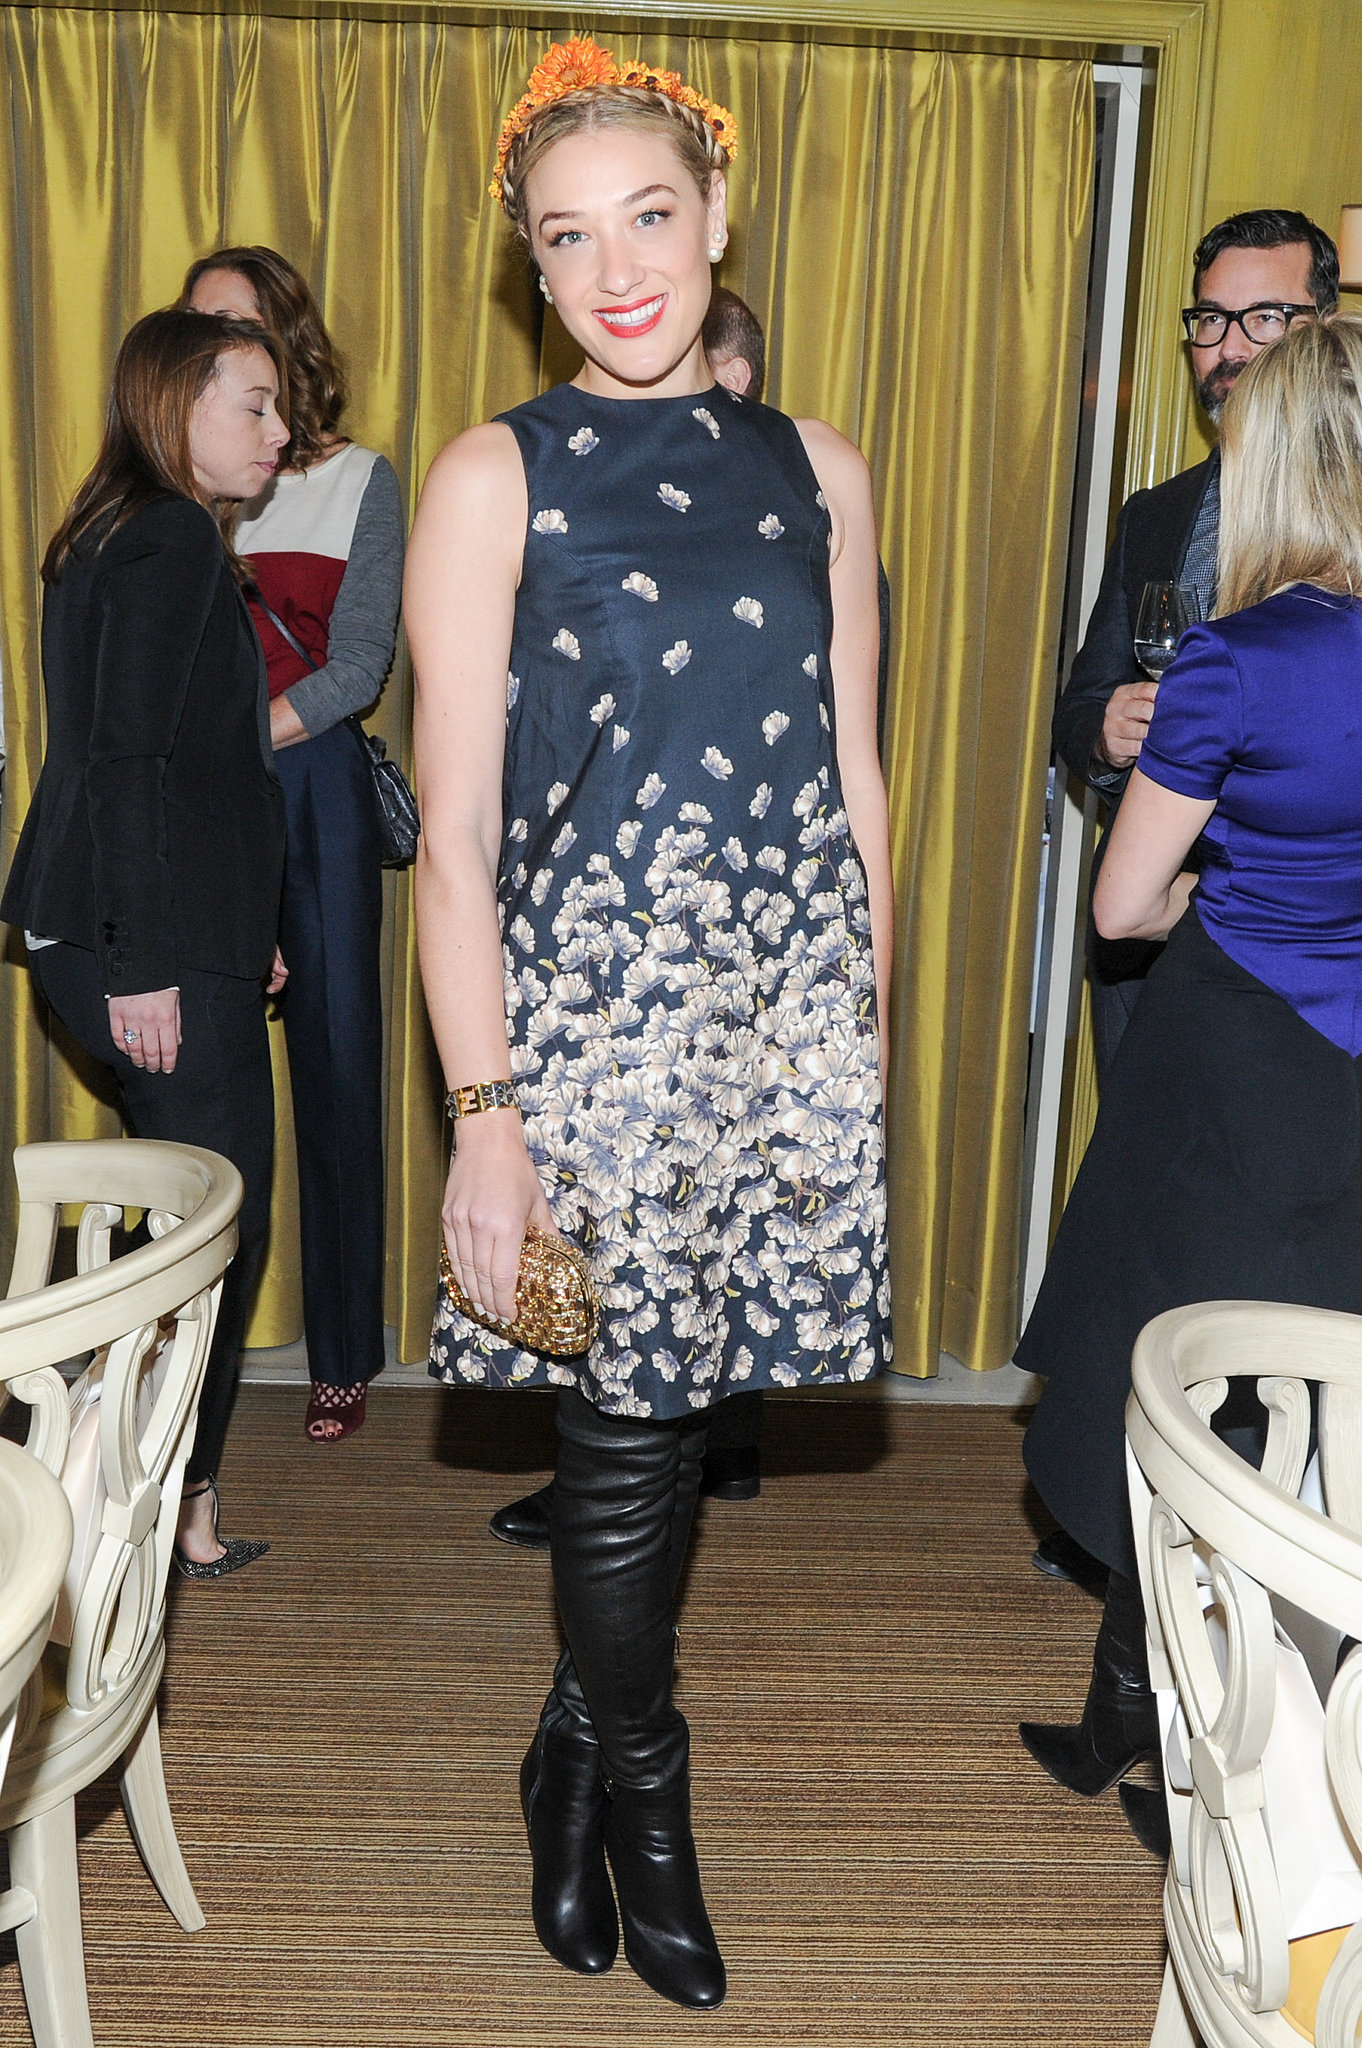 Mia Moretti at Bergdorf Goodman's Jimmy Choo event.